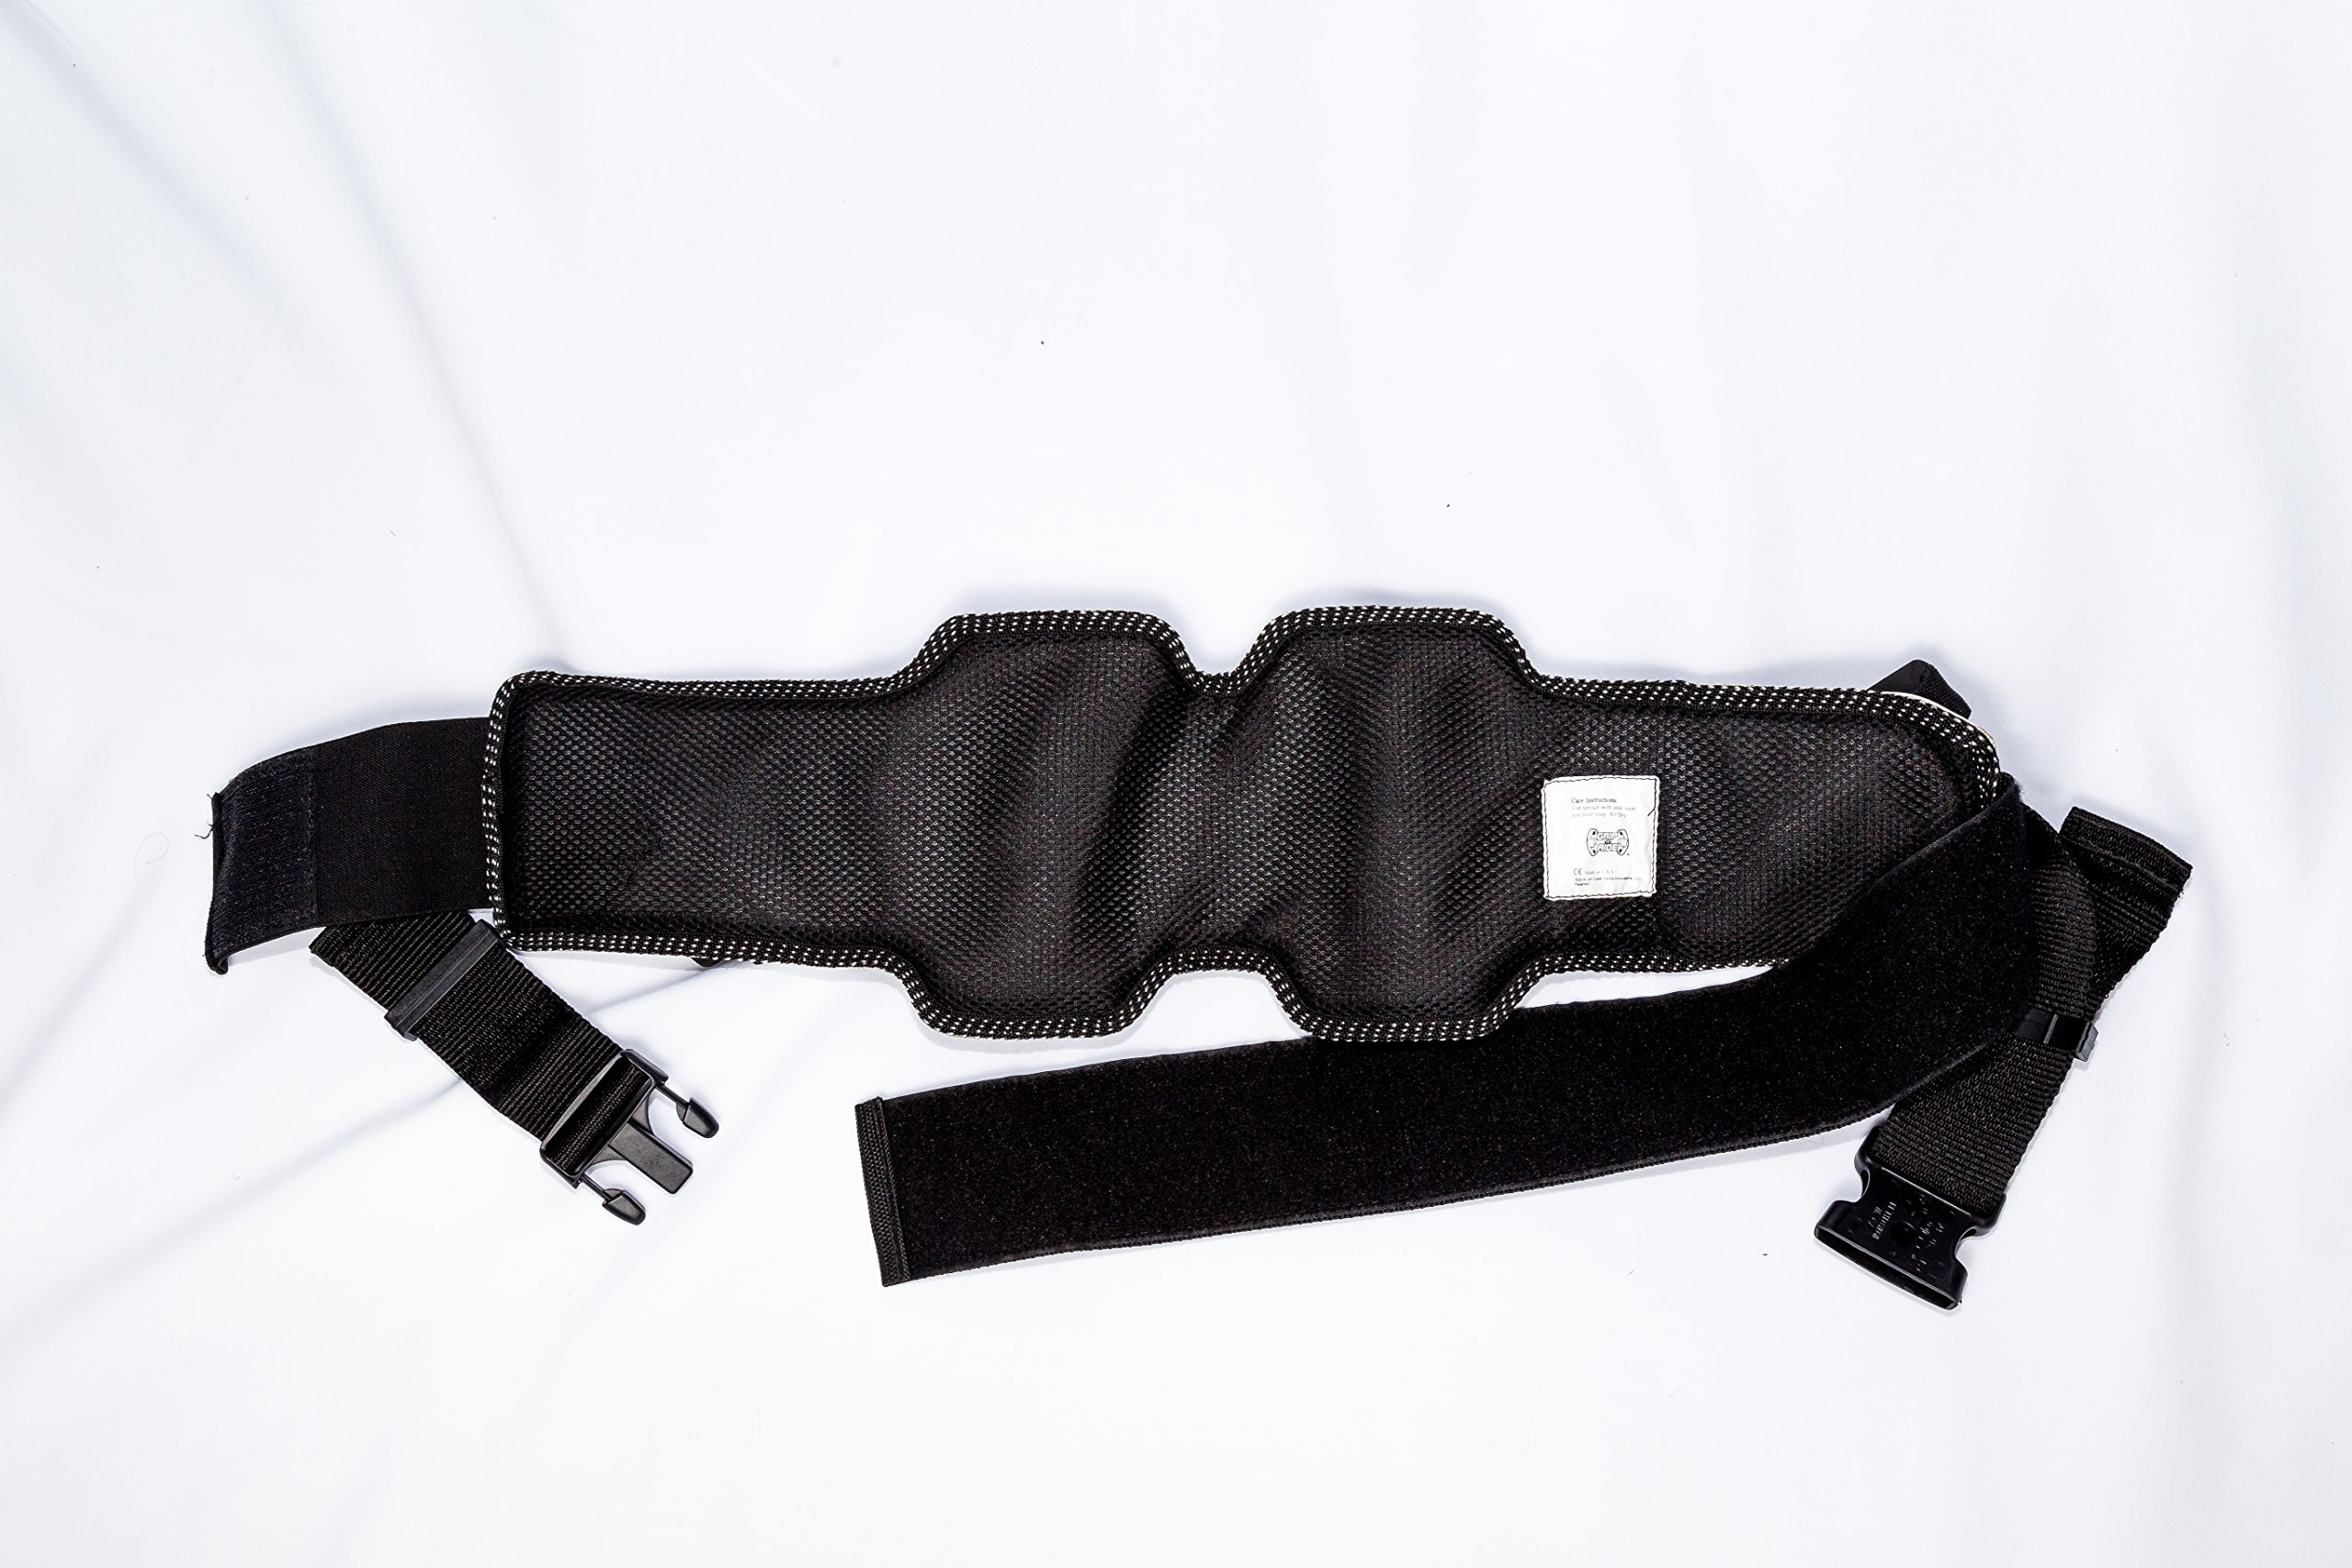 Grip-n-Ride Street Art Collection Punk Skull Belt (One Size) by Grip-n-Ride (Image #3)